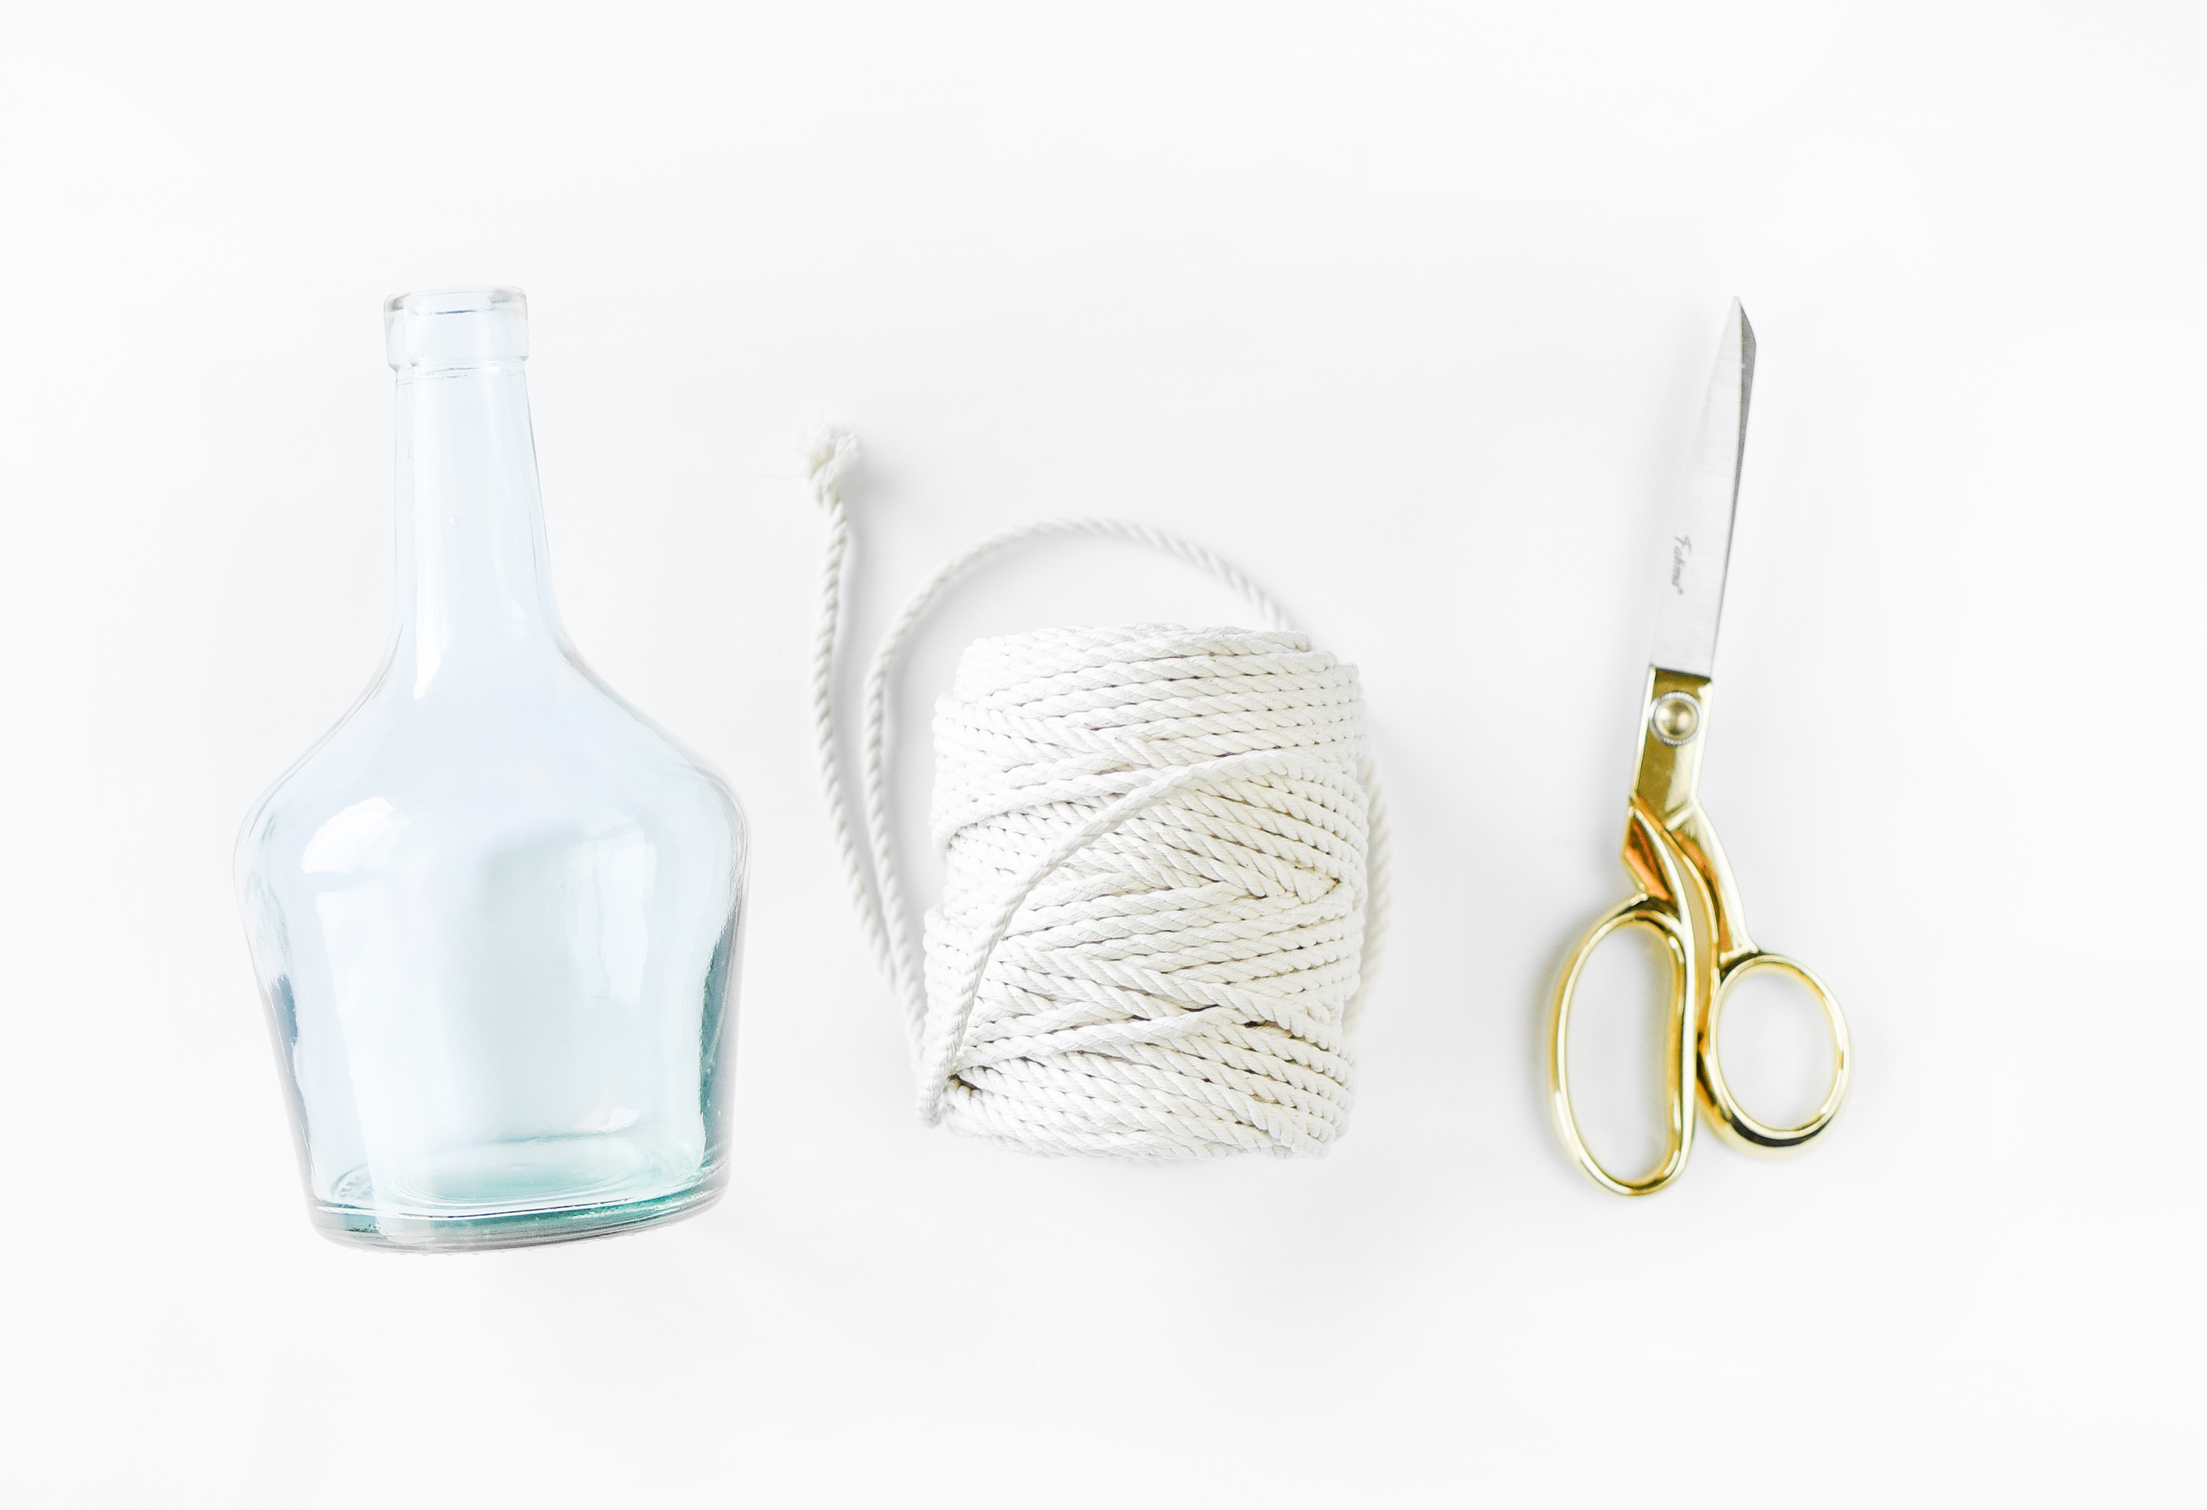 DIY Sailor's Rope Vases